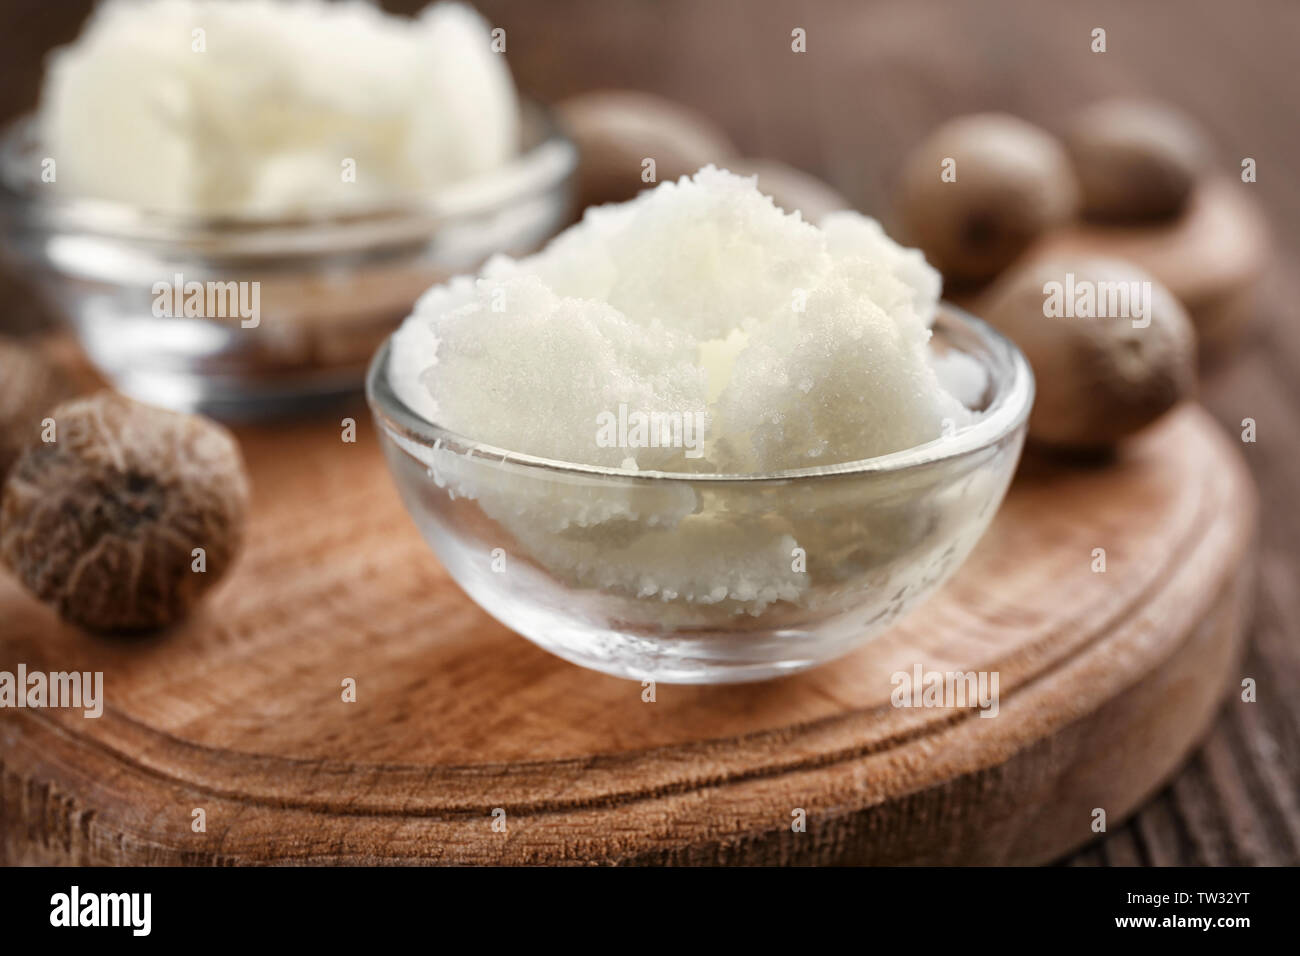 Shea butter in bowls on wooden background, close up Stock Photo